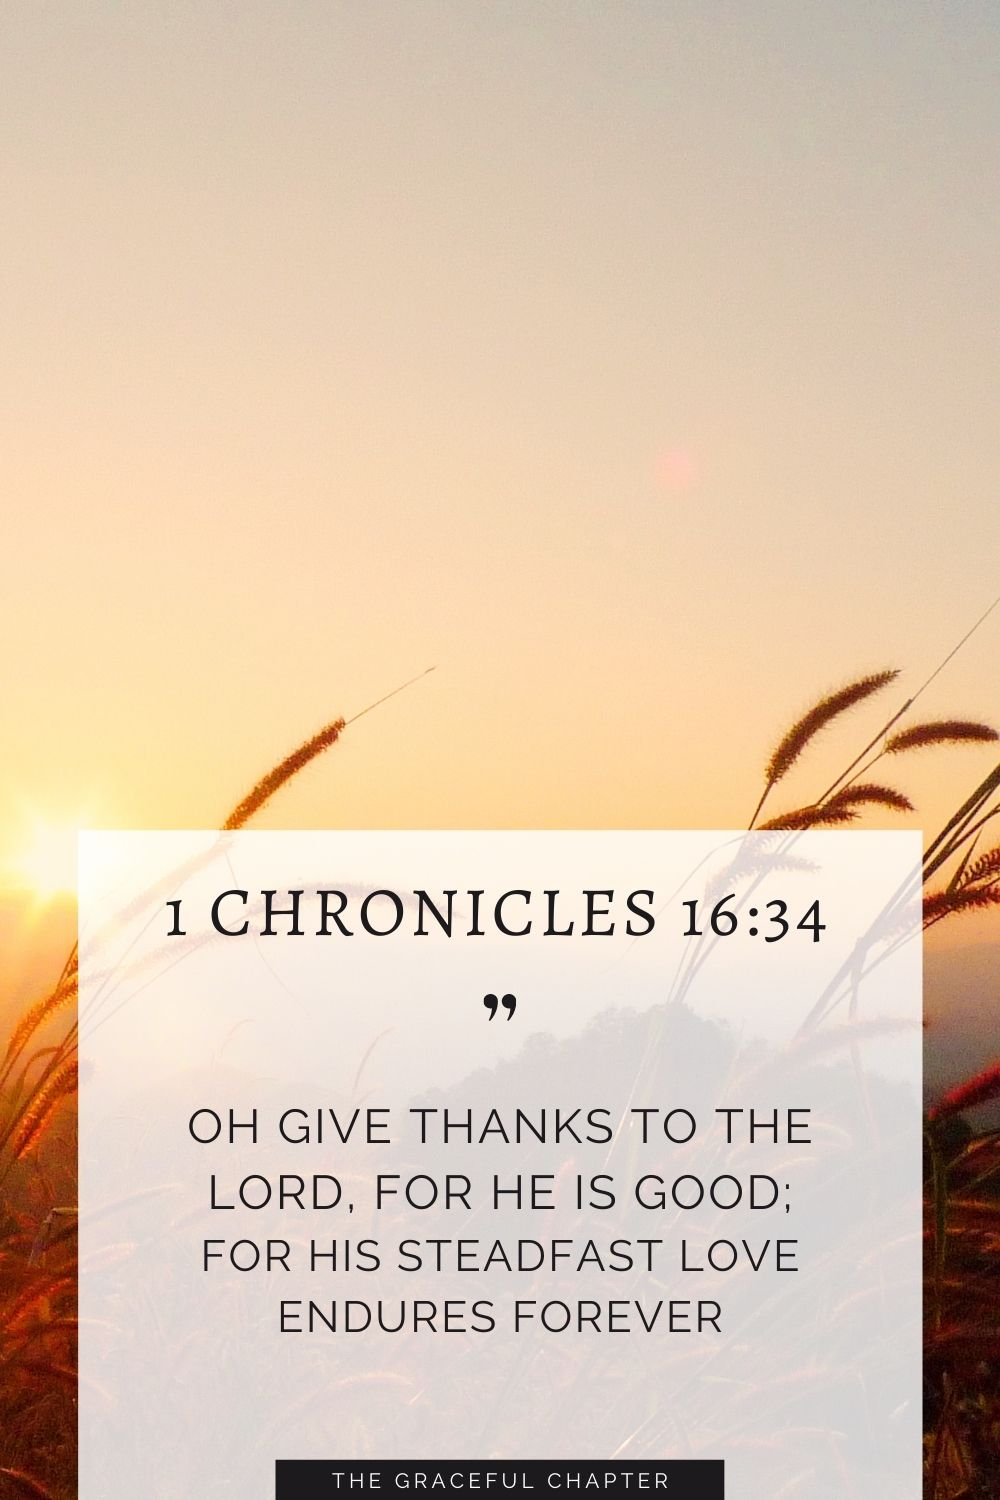 Oh give thanks to the Lord, for he is good; for his steadfast love endures foreverOh give thanks to the Lord, for he is good; for his steadfast love endures forever 1 Chronicles 16:34